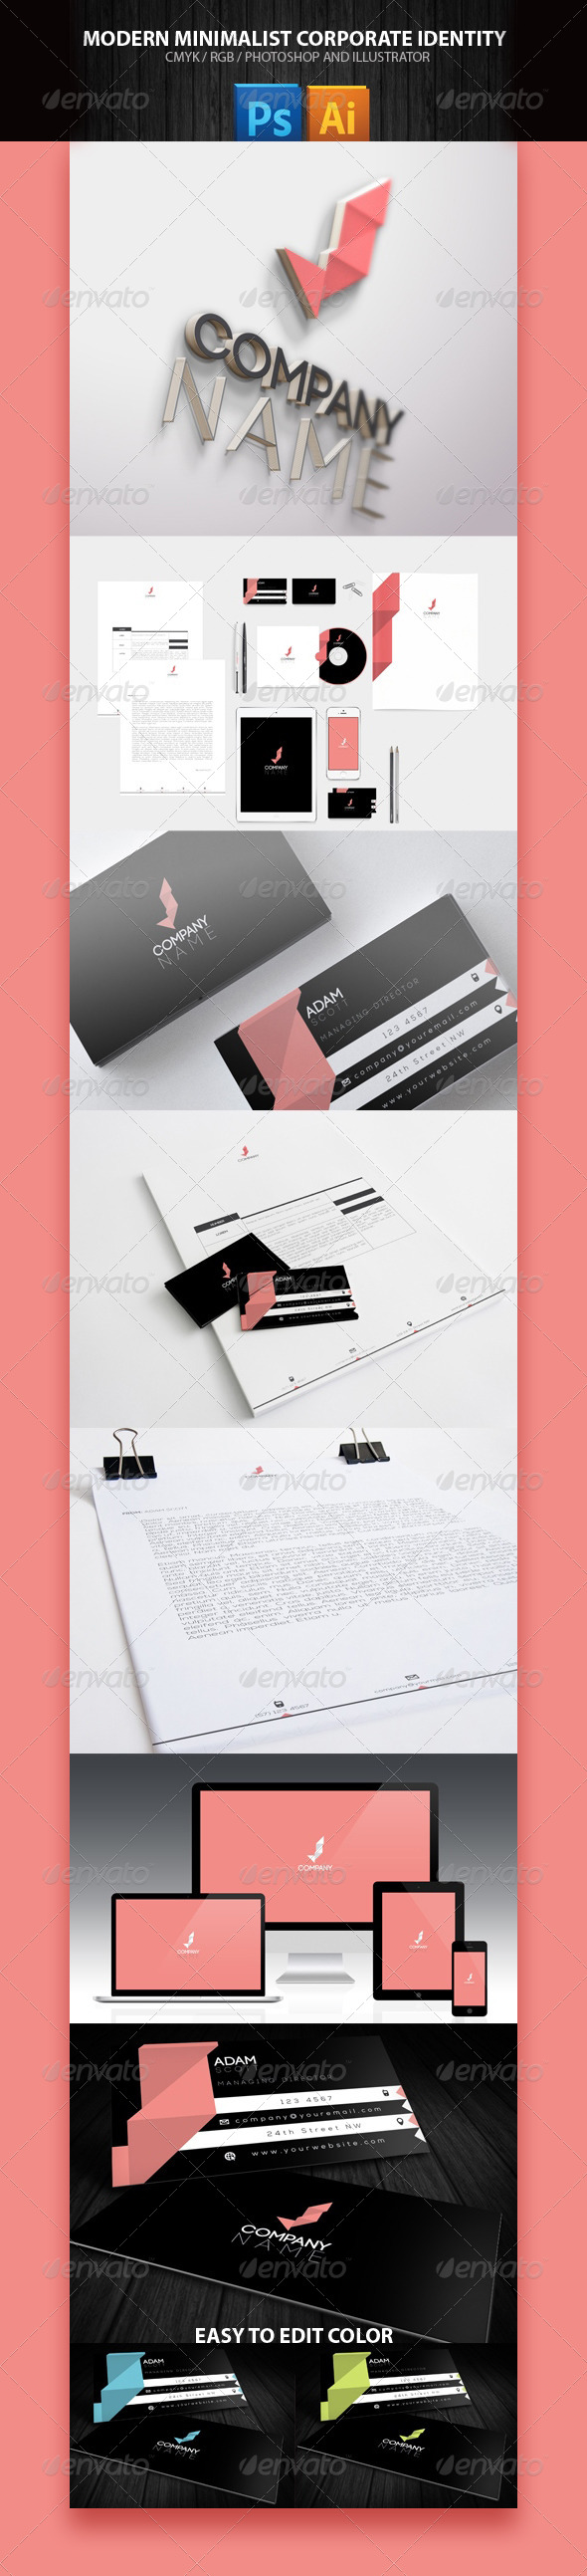 Business Corporate Pack Minimal - Stationery Print Templates